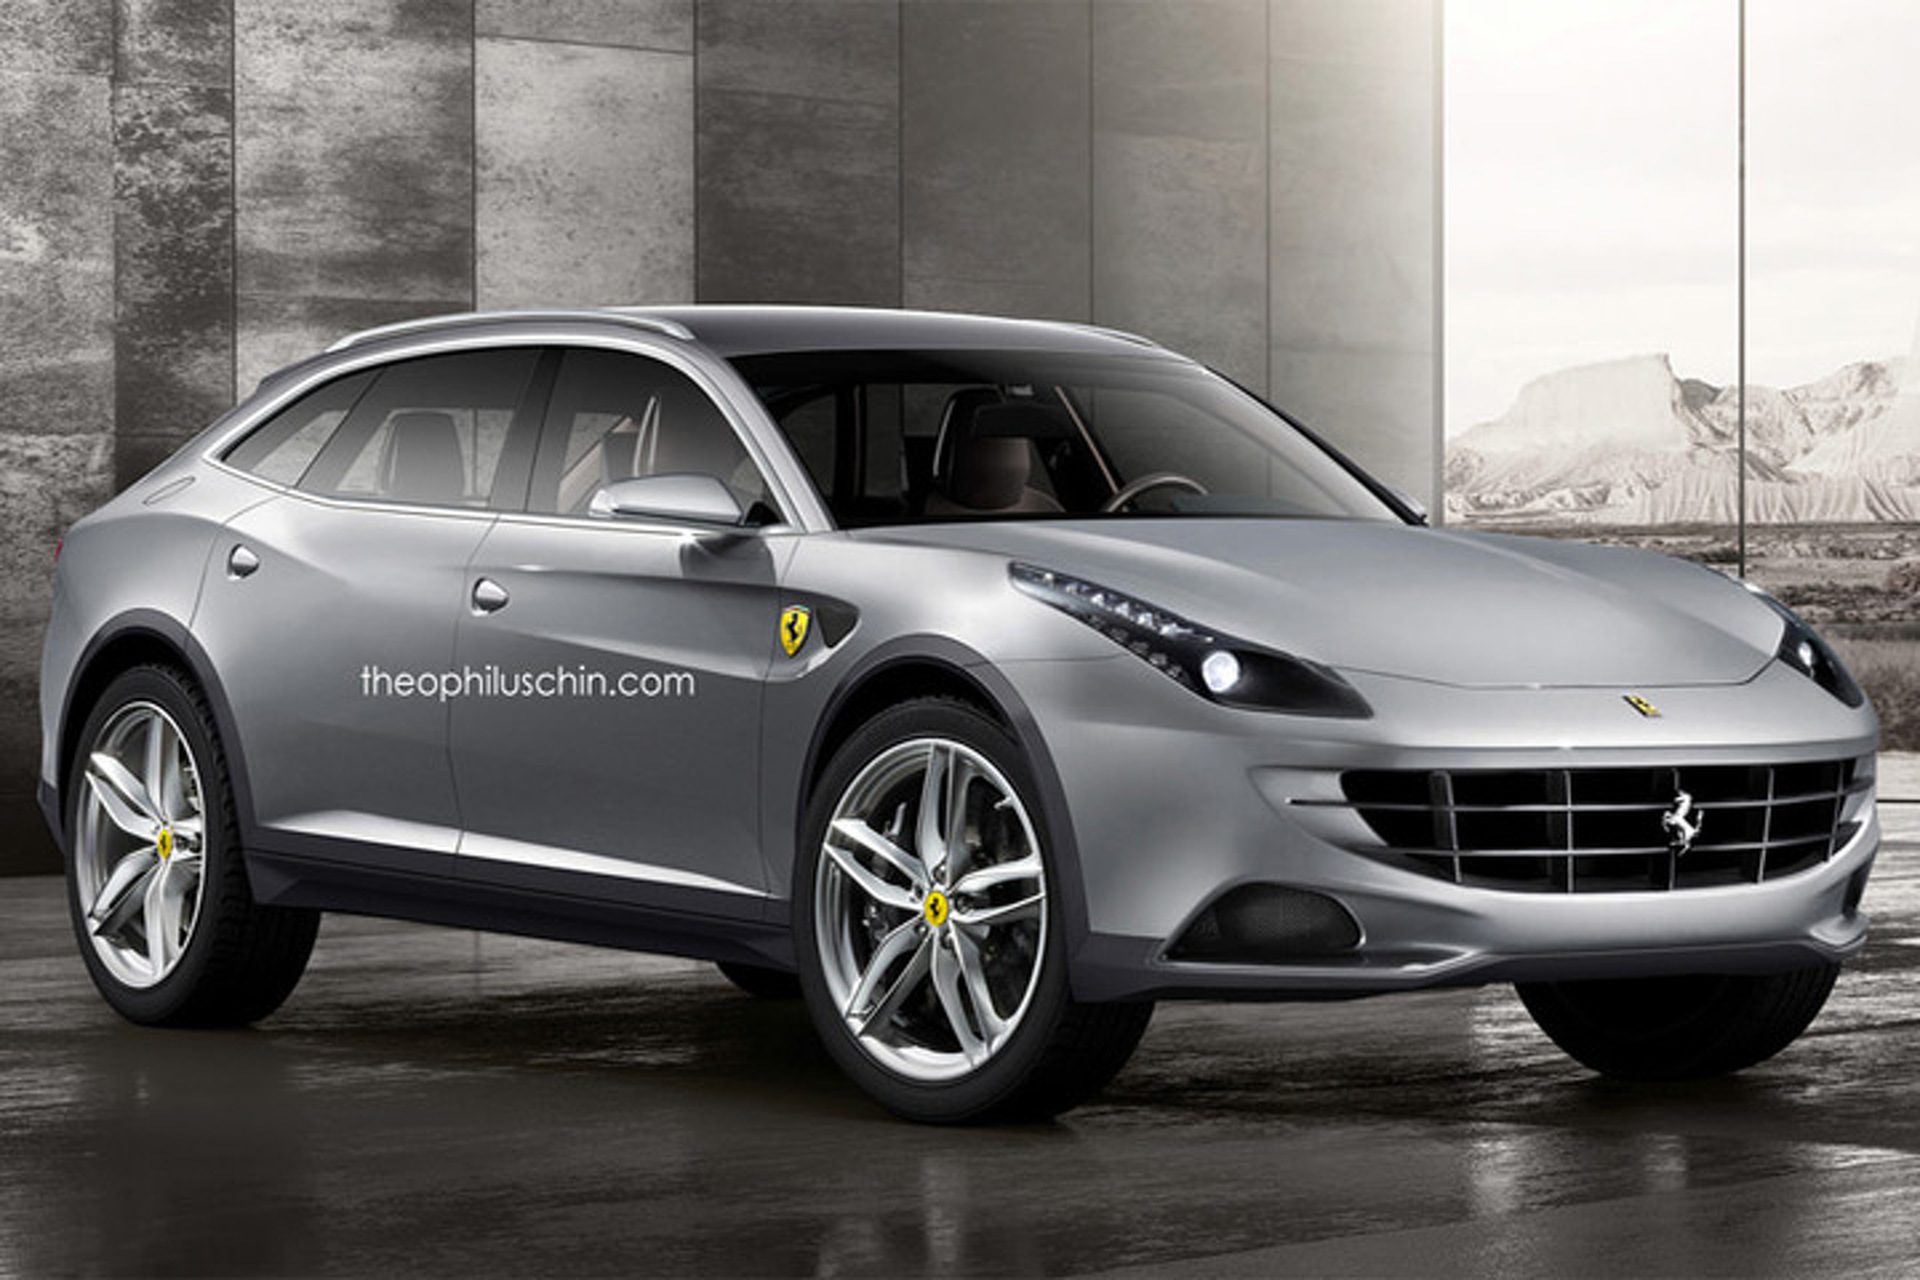 A Ferrari Suv Won T Happen As Long As Marchionne Is Still In Charge